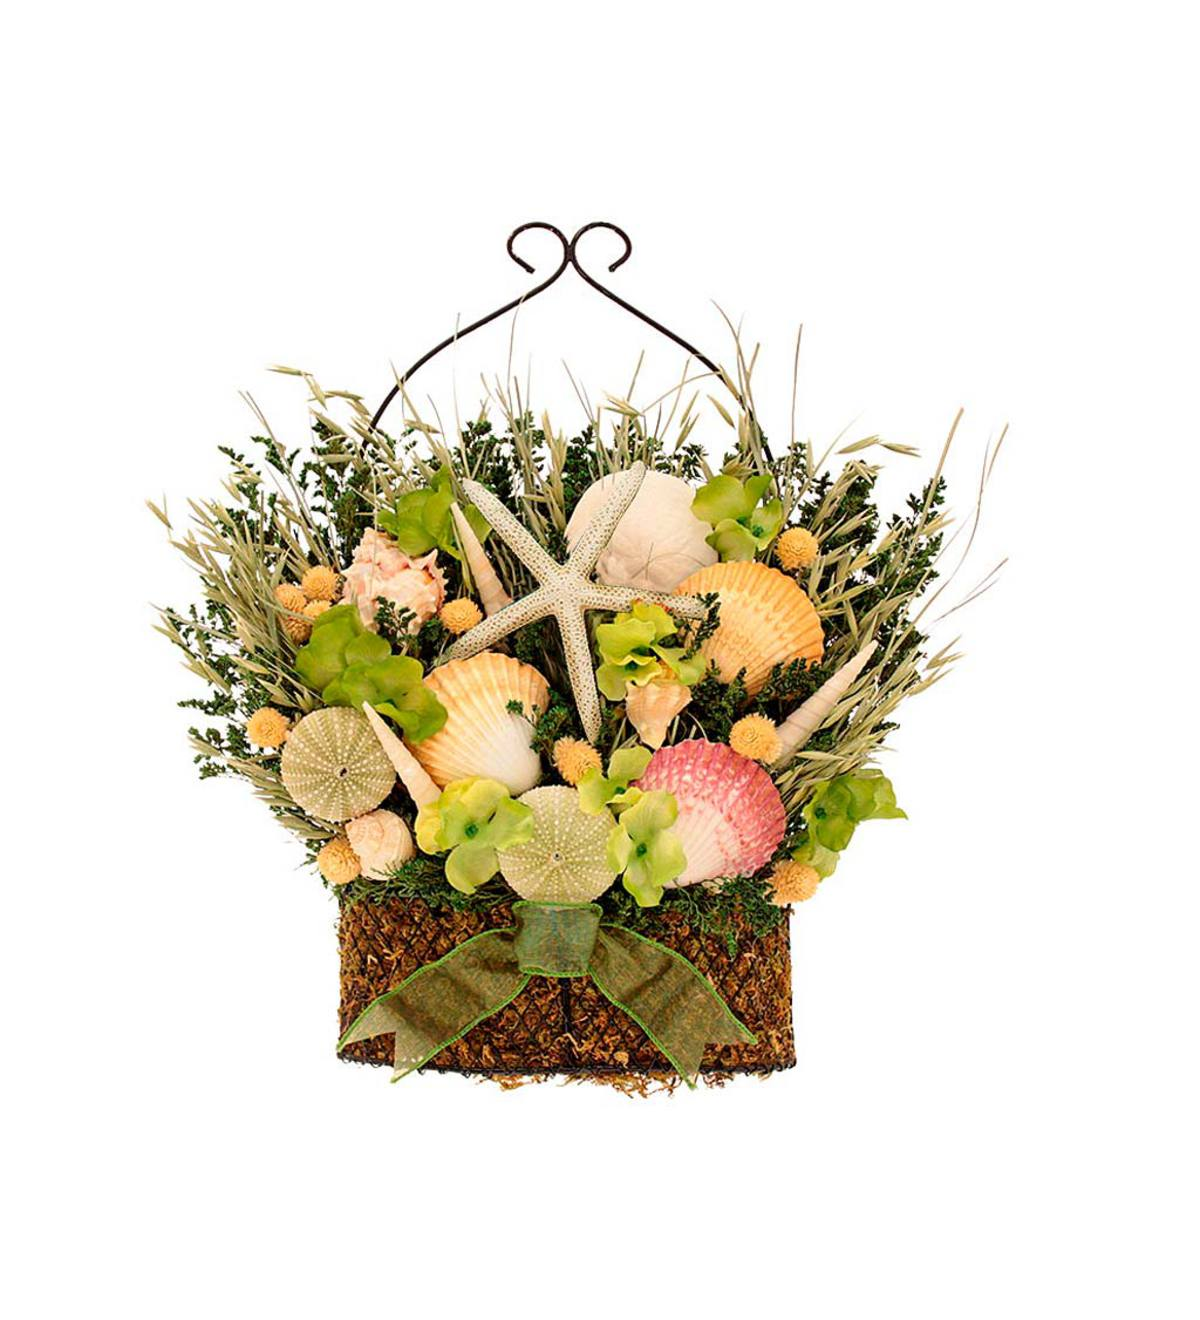 Seashell Basket Wreaths Home Decor For The Home Wind And Weather